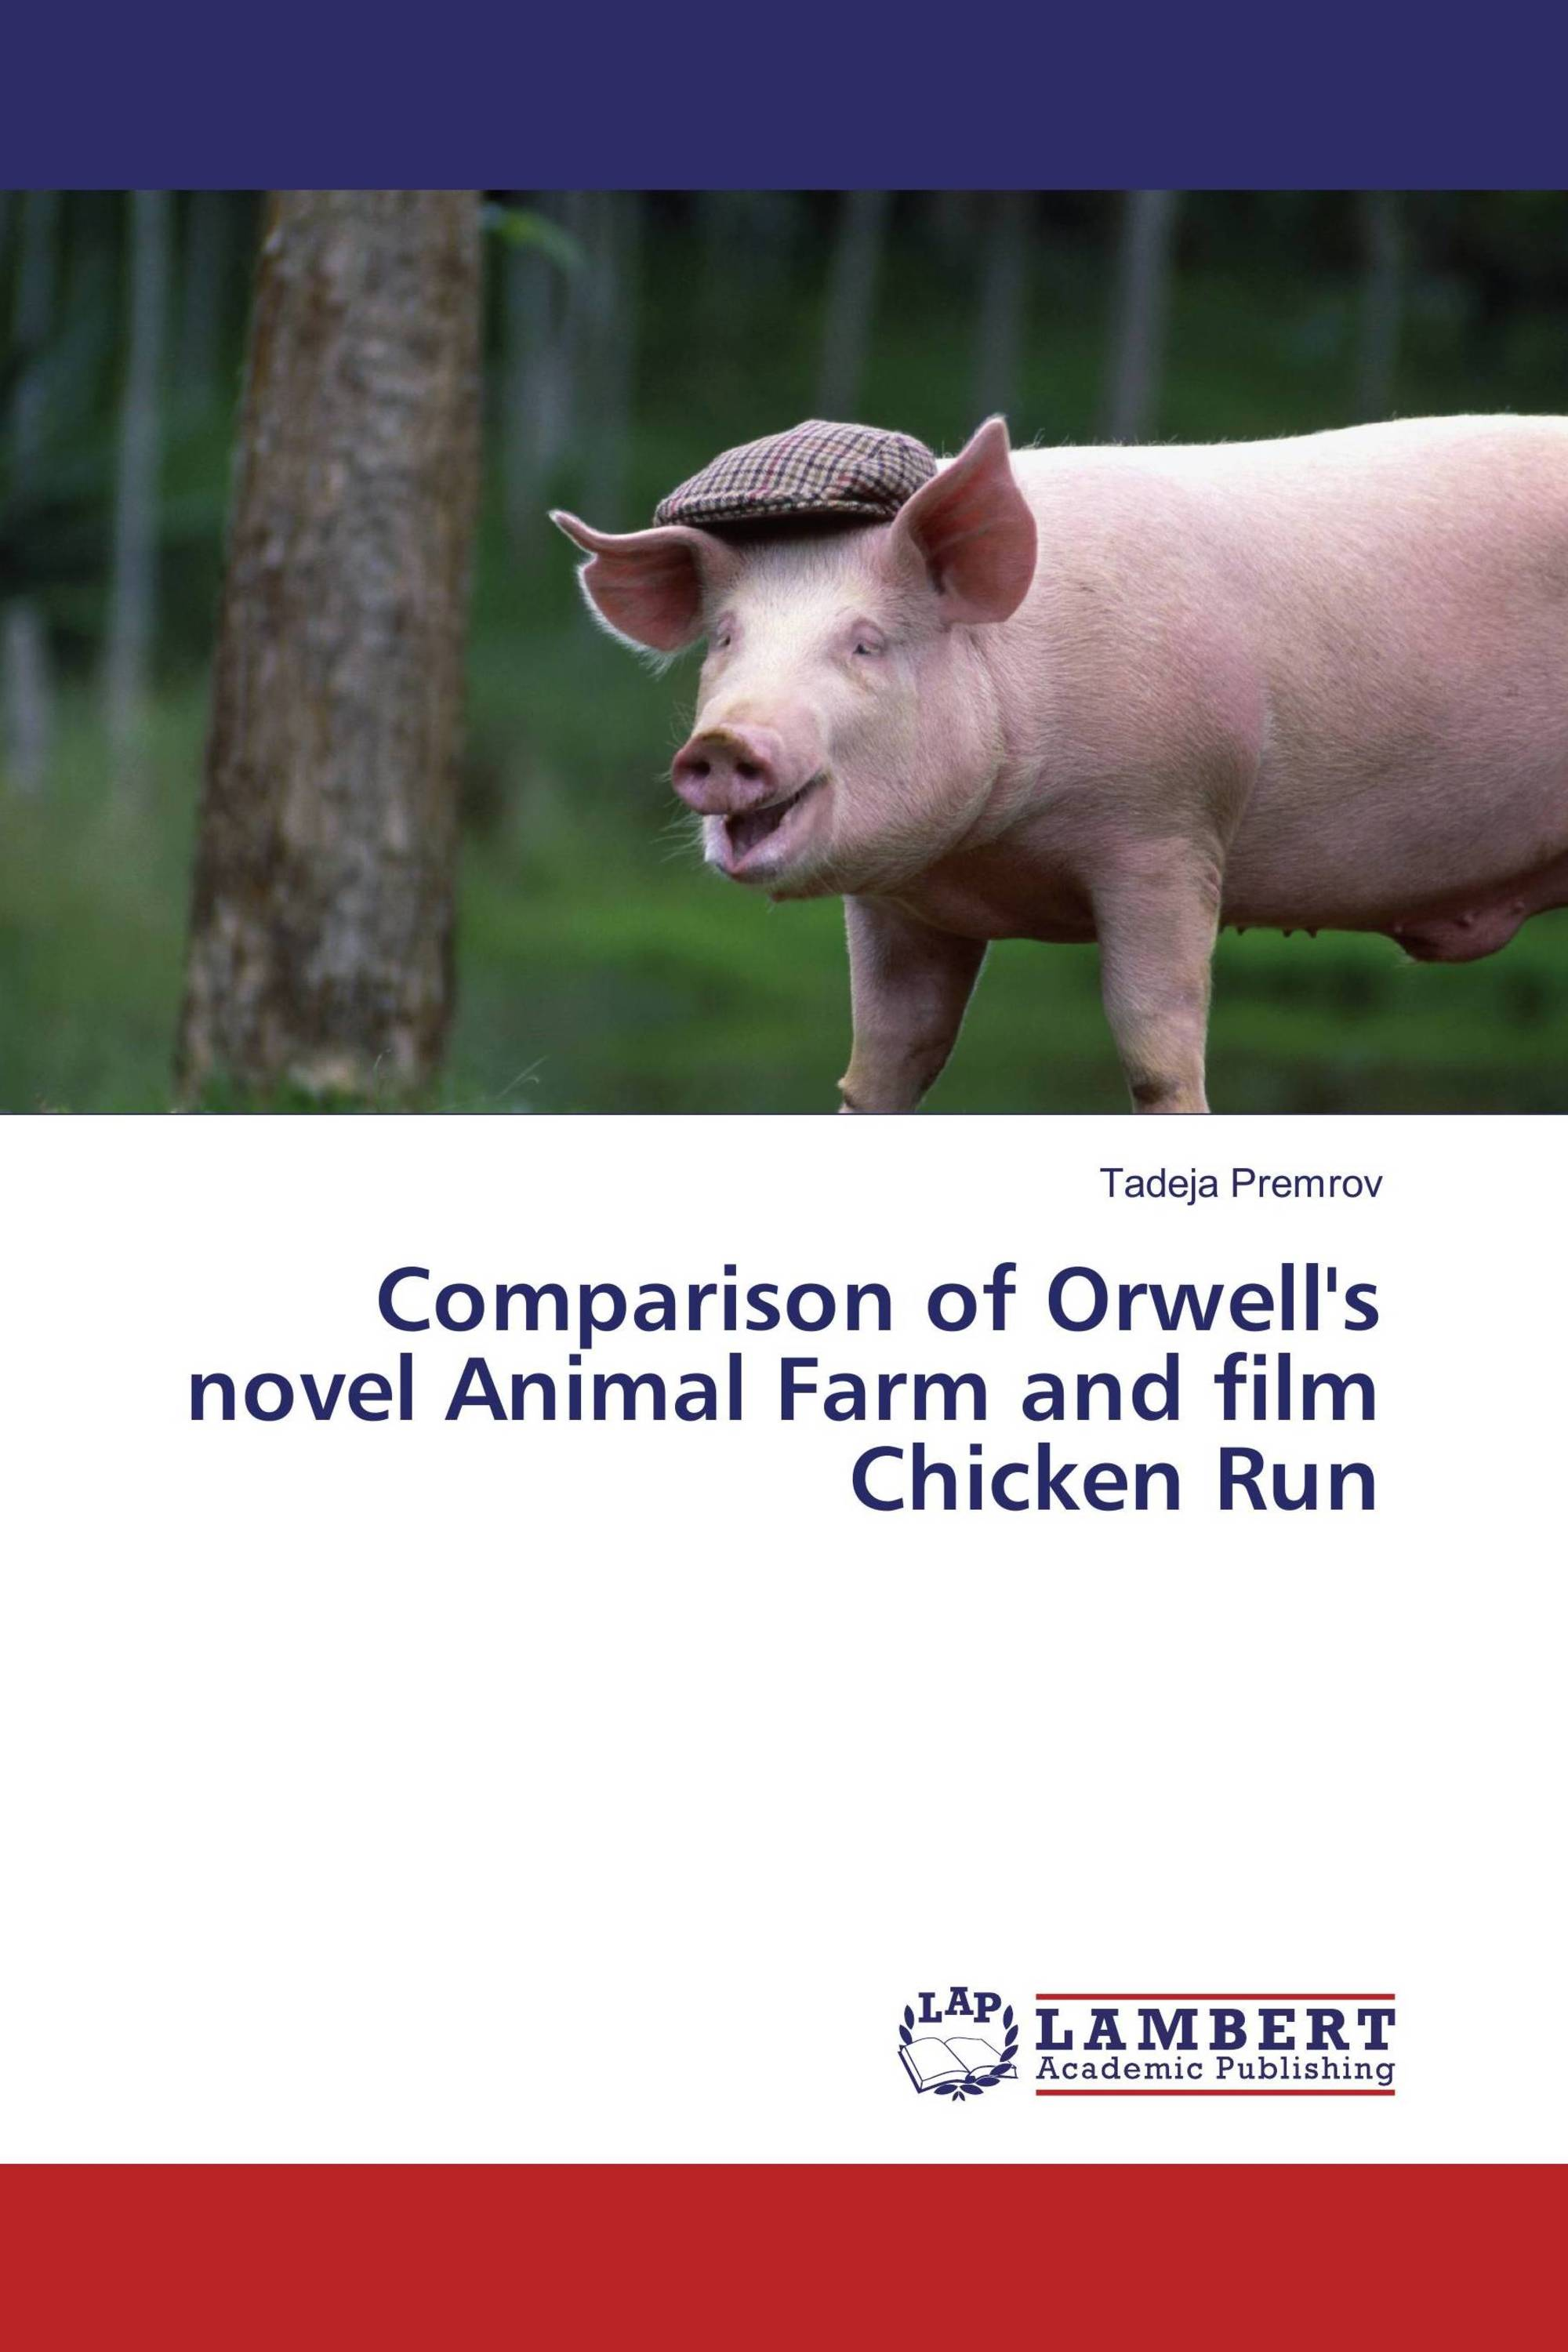 animal farm comparison of the animal